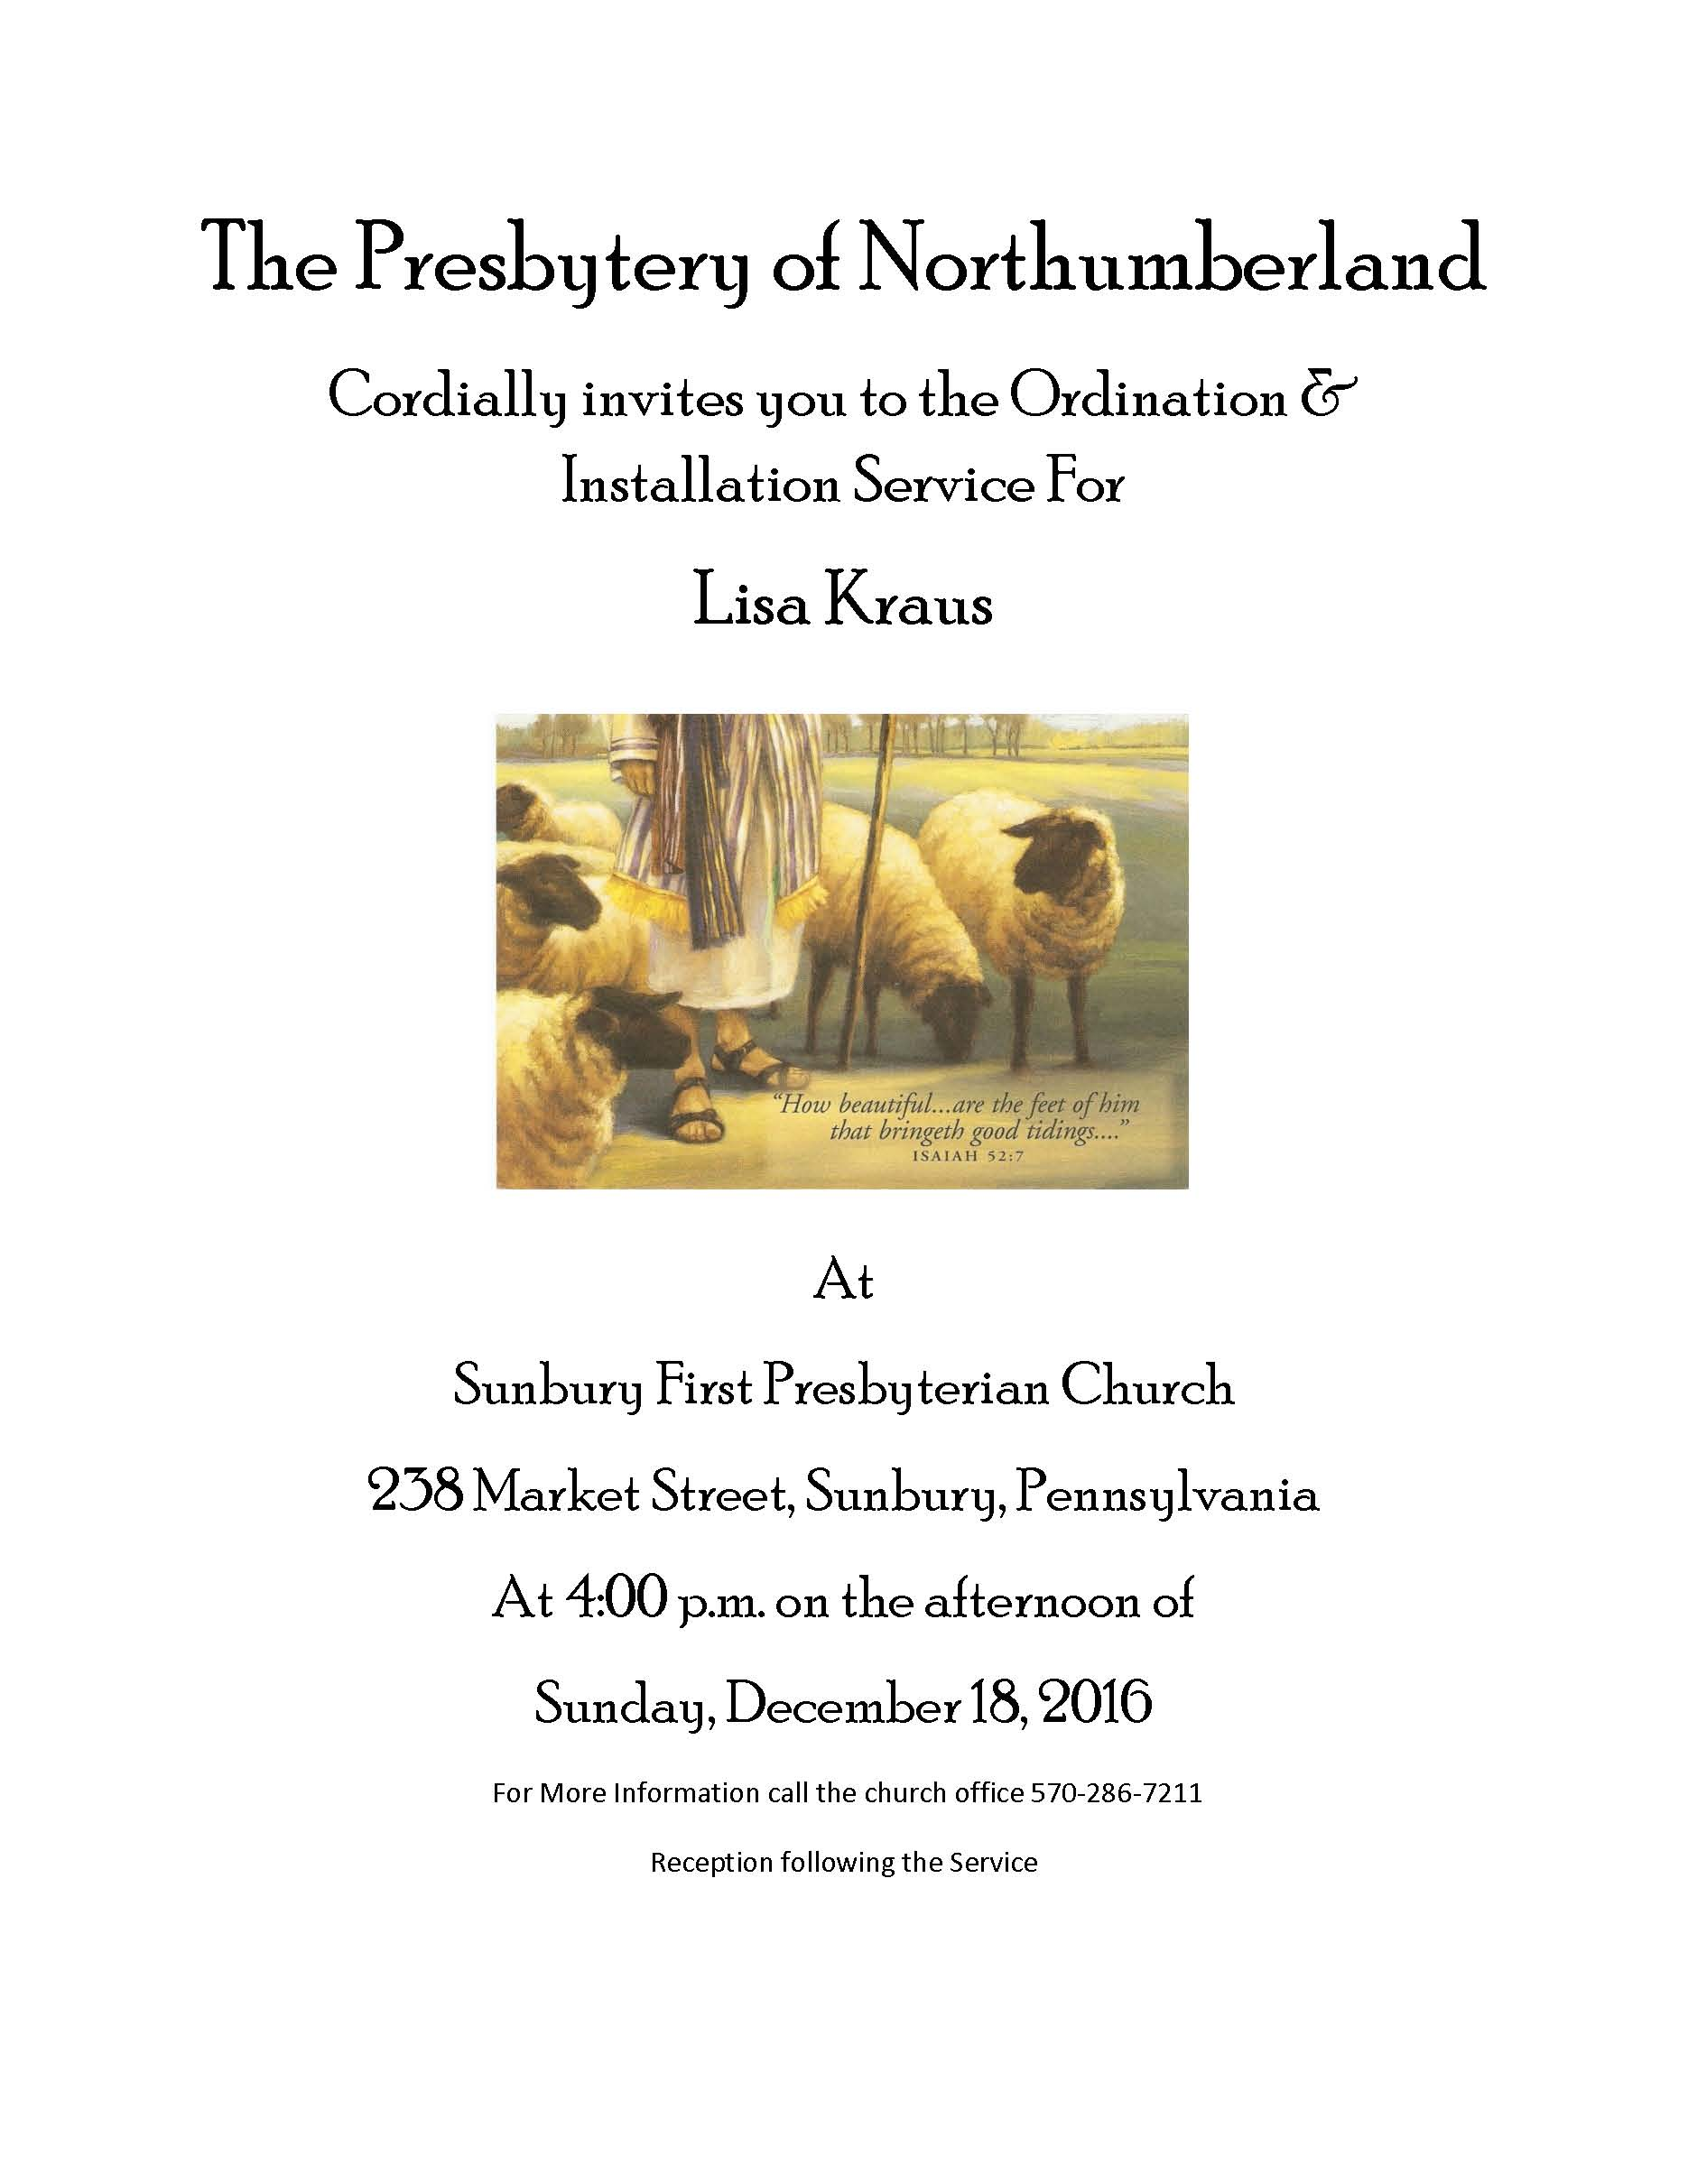 lisa-kraus-ordination-annoucement